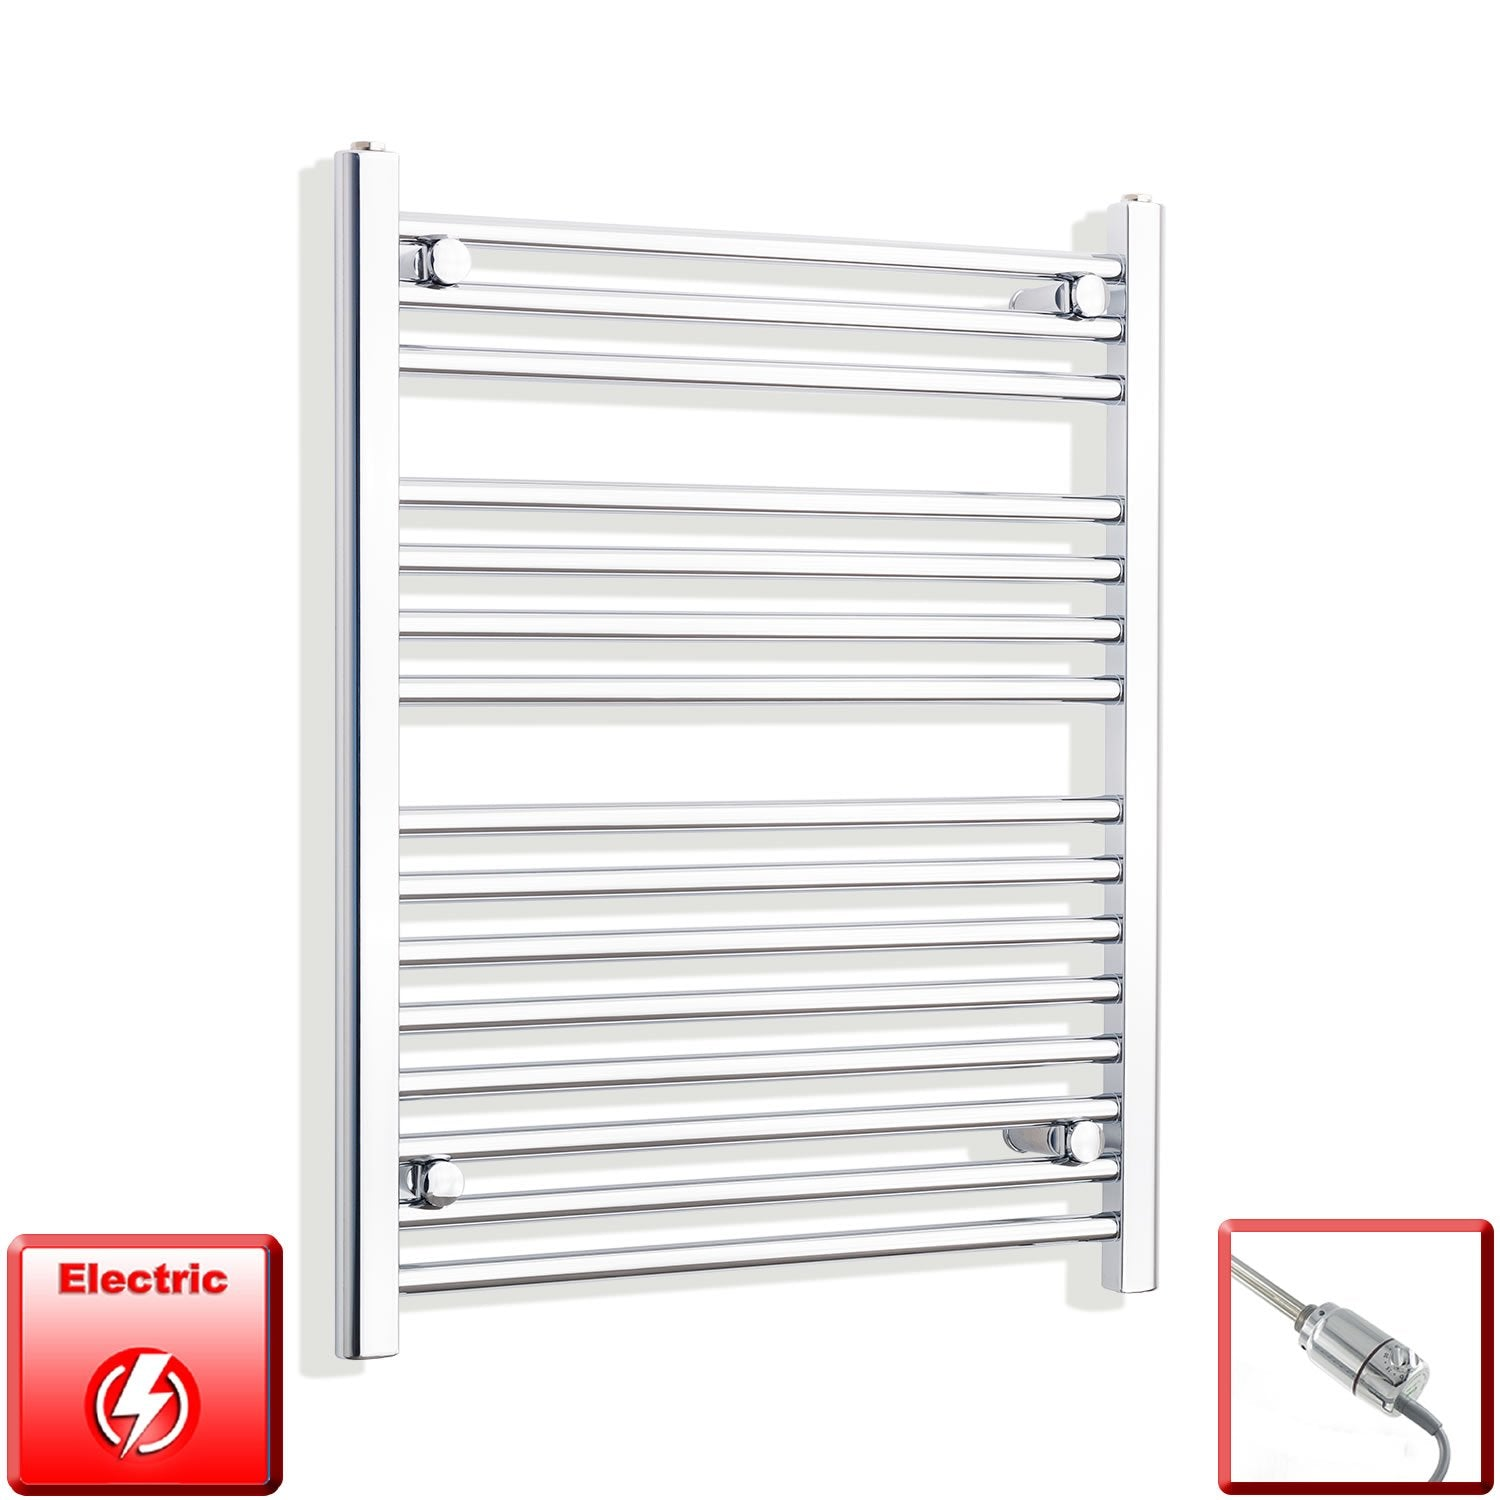 650mm Wide 800mm High Flat Chrome Pre-Filled Electric Heated Towel Rail Radiator HTR,GT Thermostatic